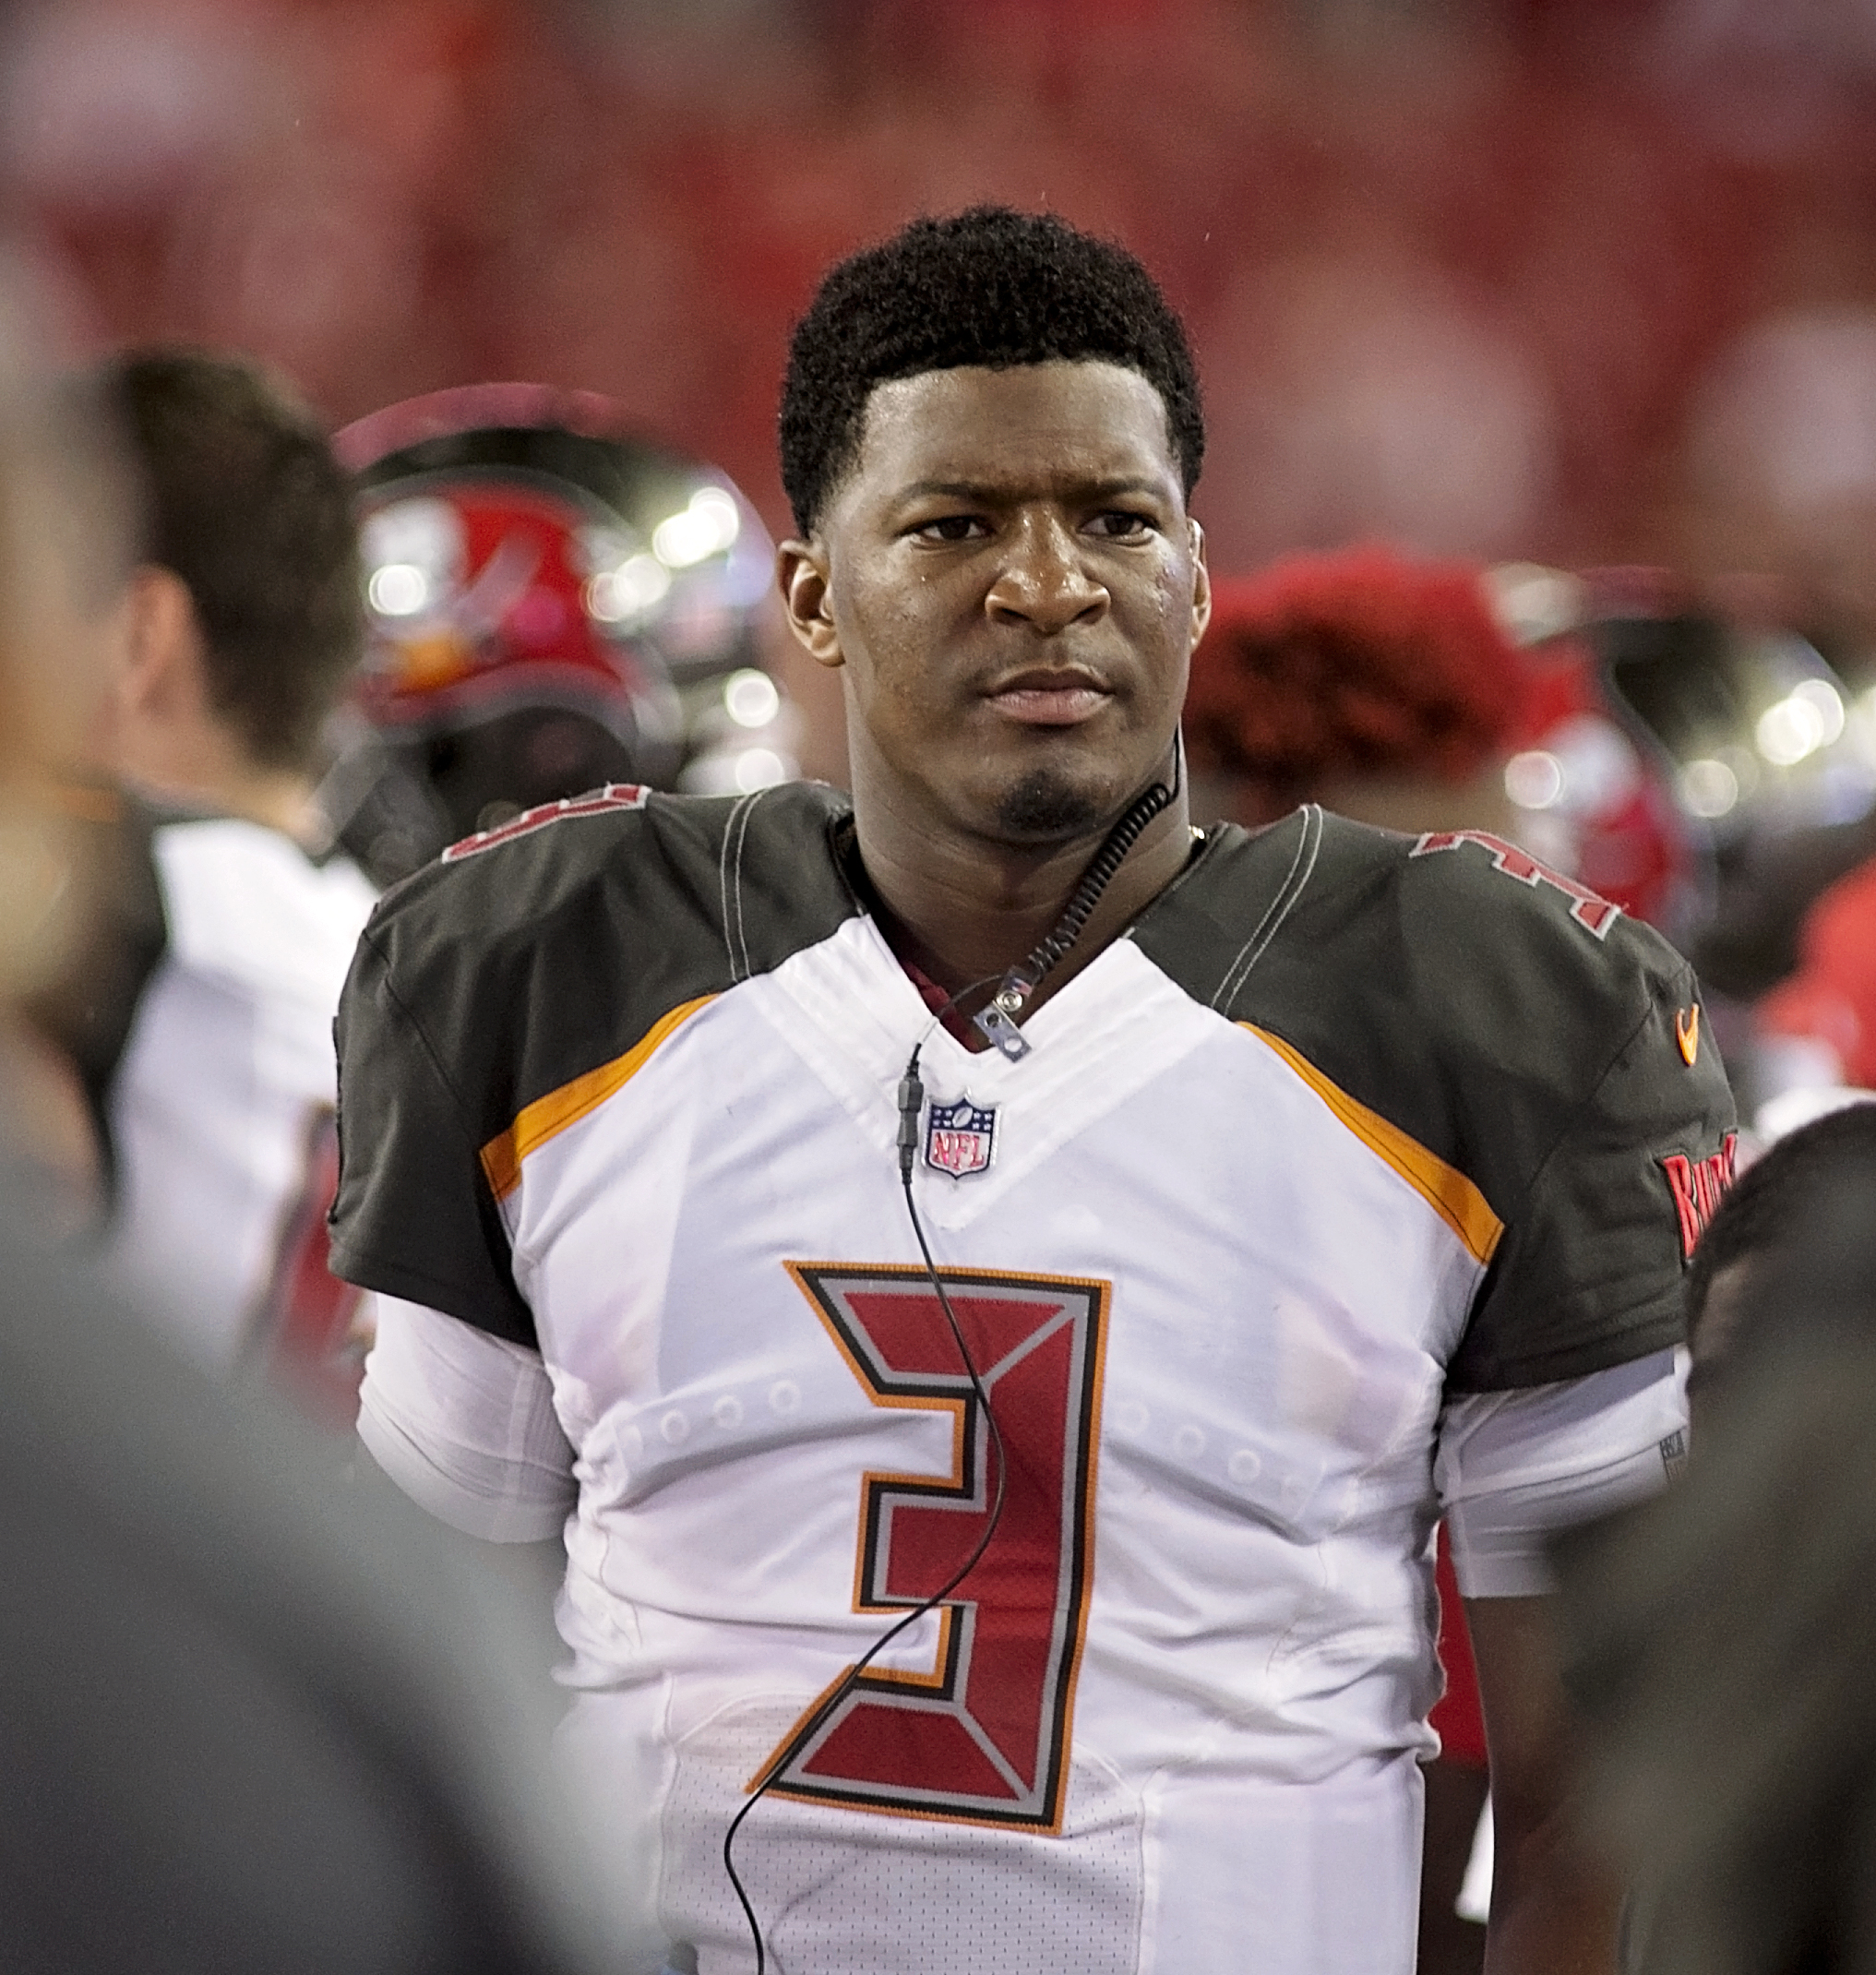 Winston has led his team to only one touchdown./CARMEN MANDATO